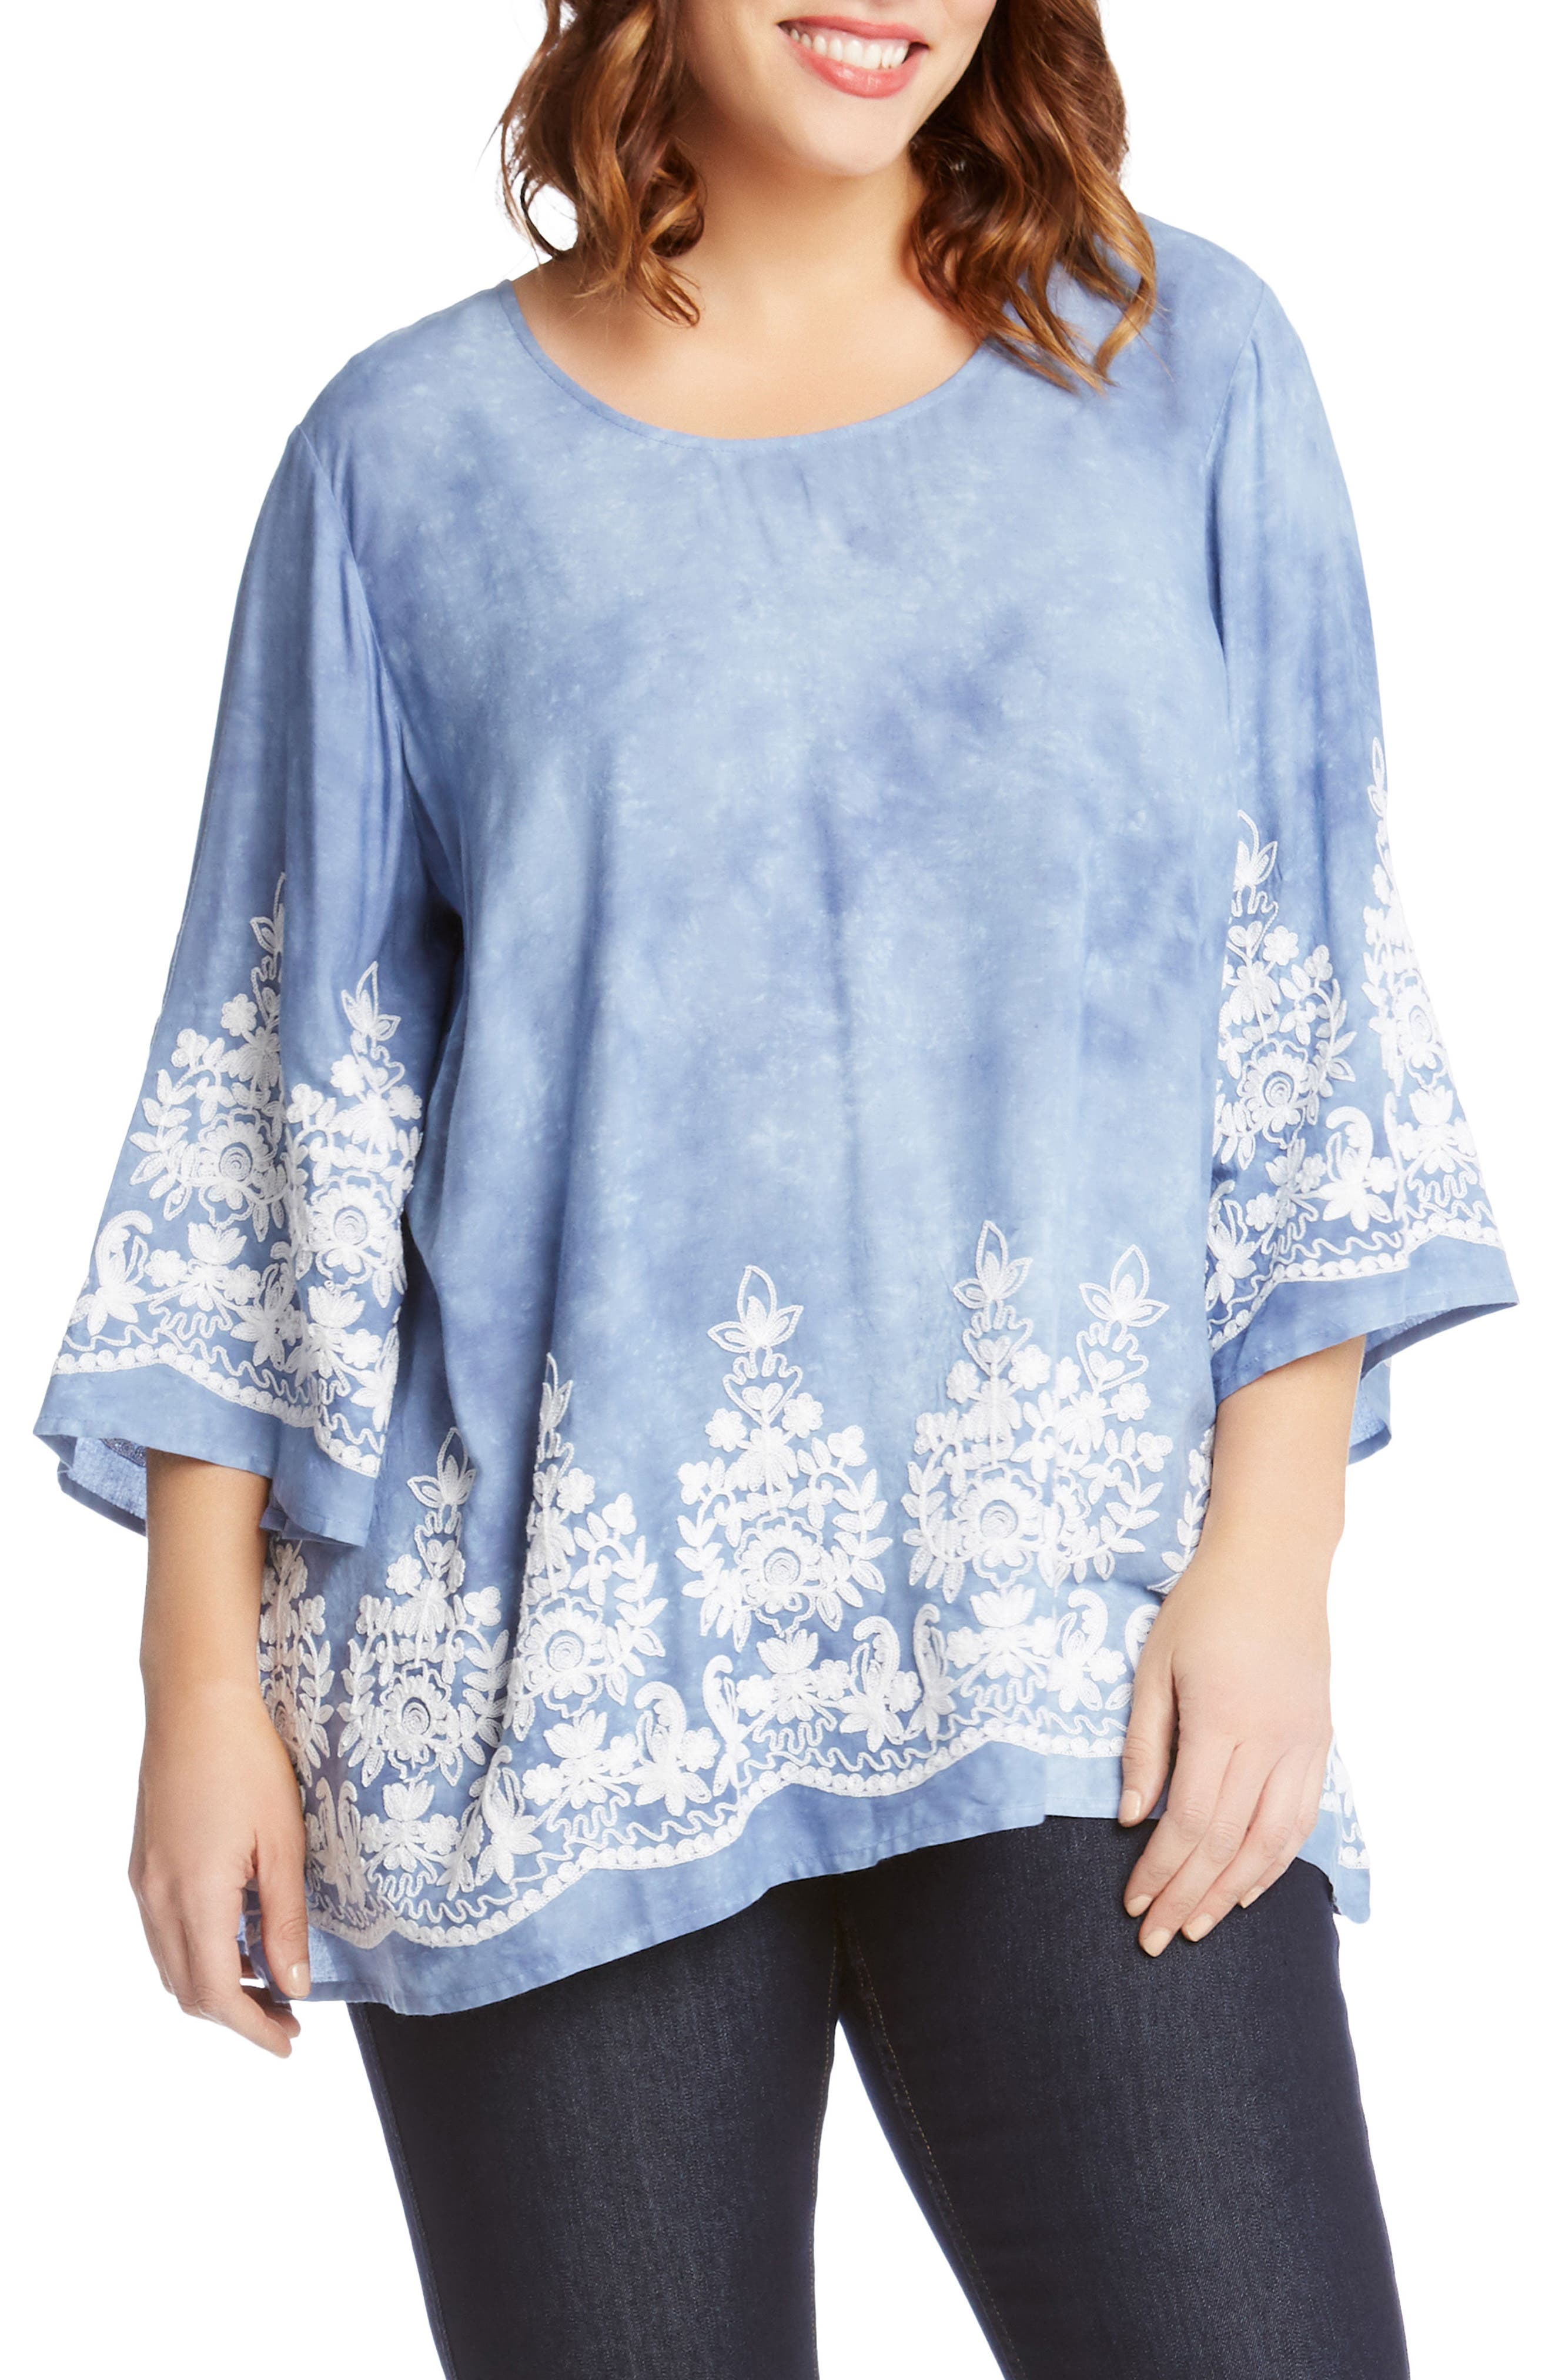 Embroidered Tie Dye Top,                         Main,                         color, Tie Dye